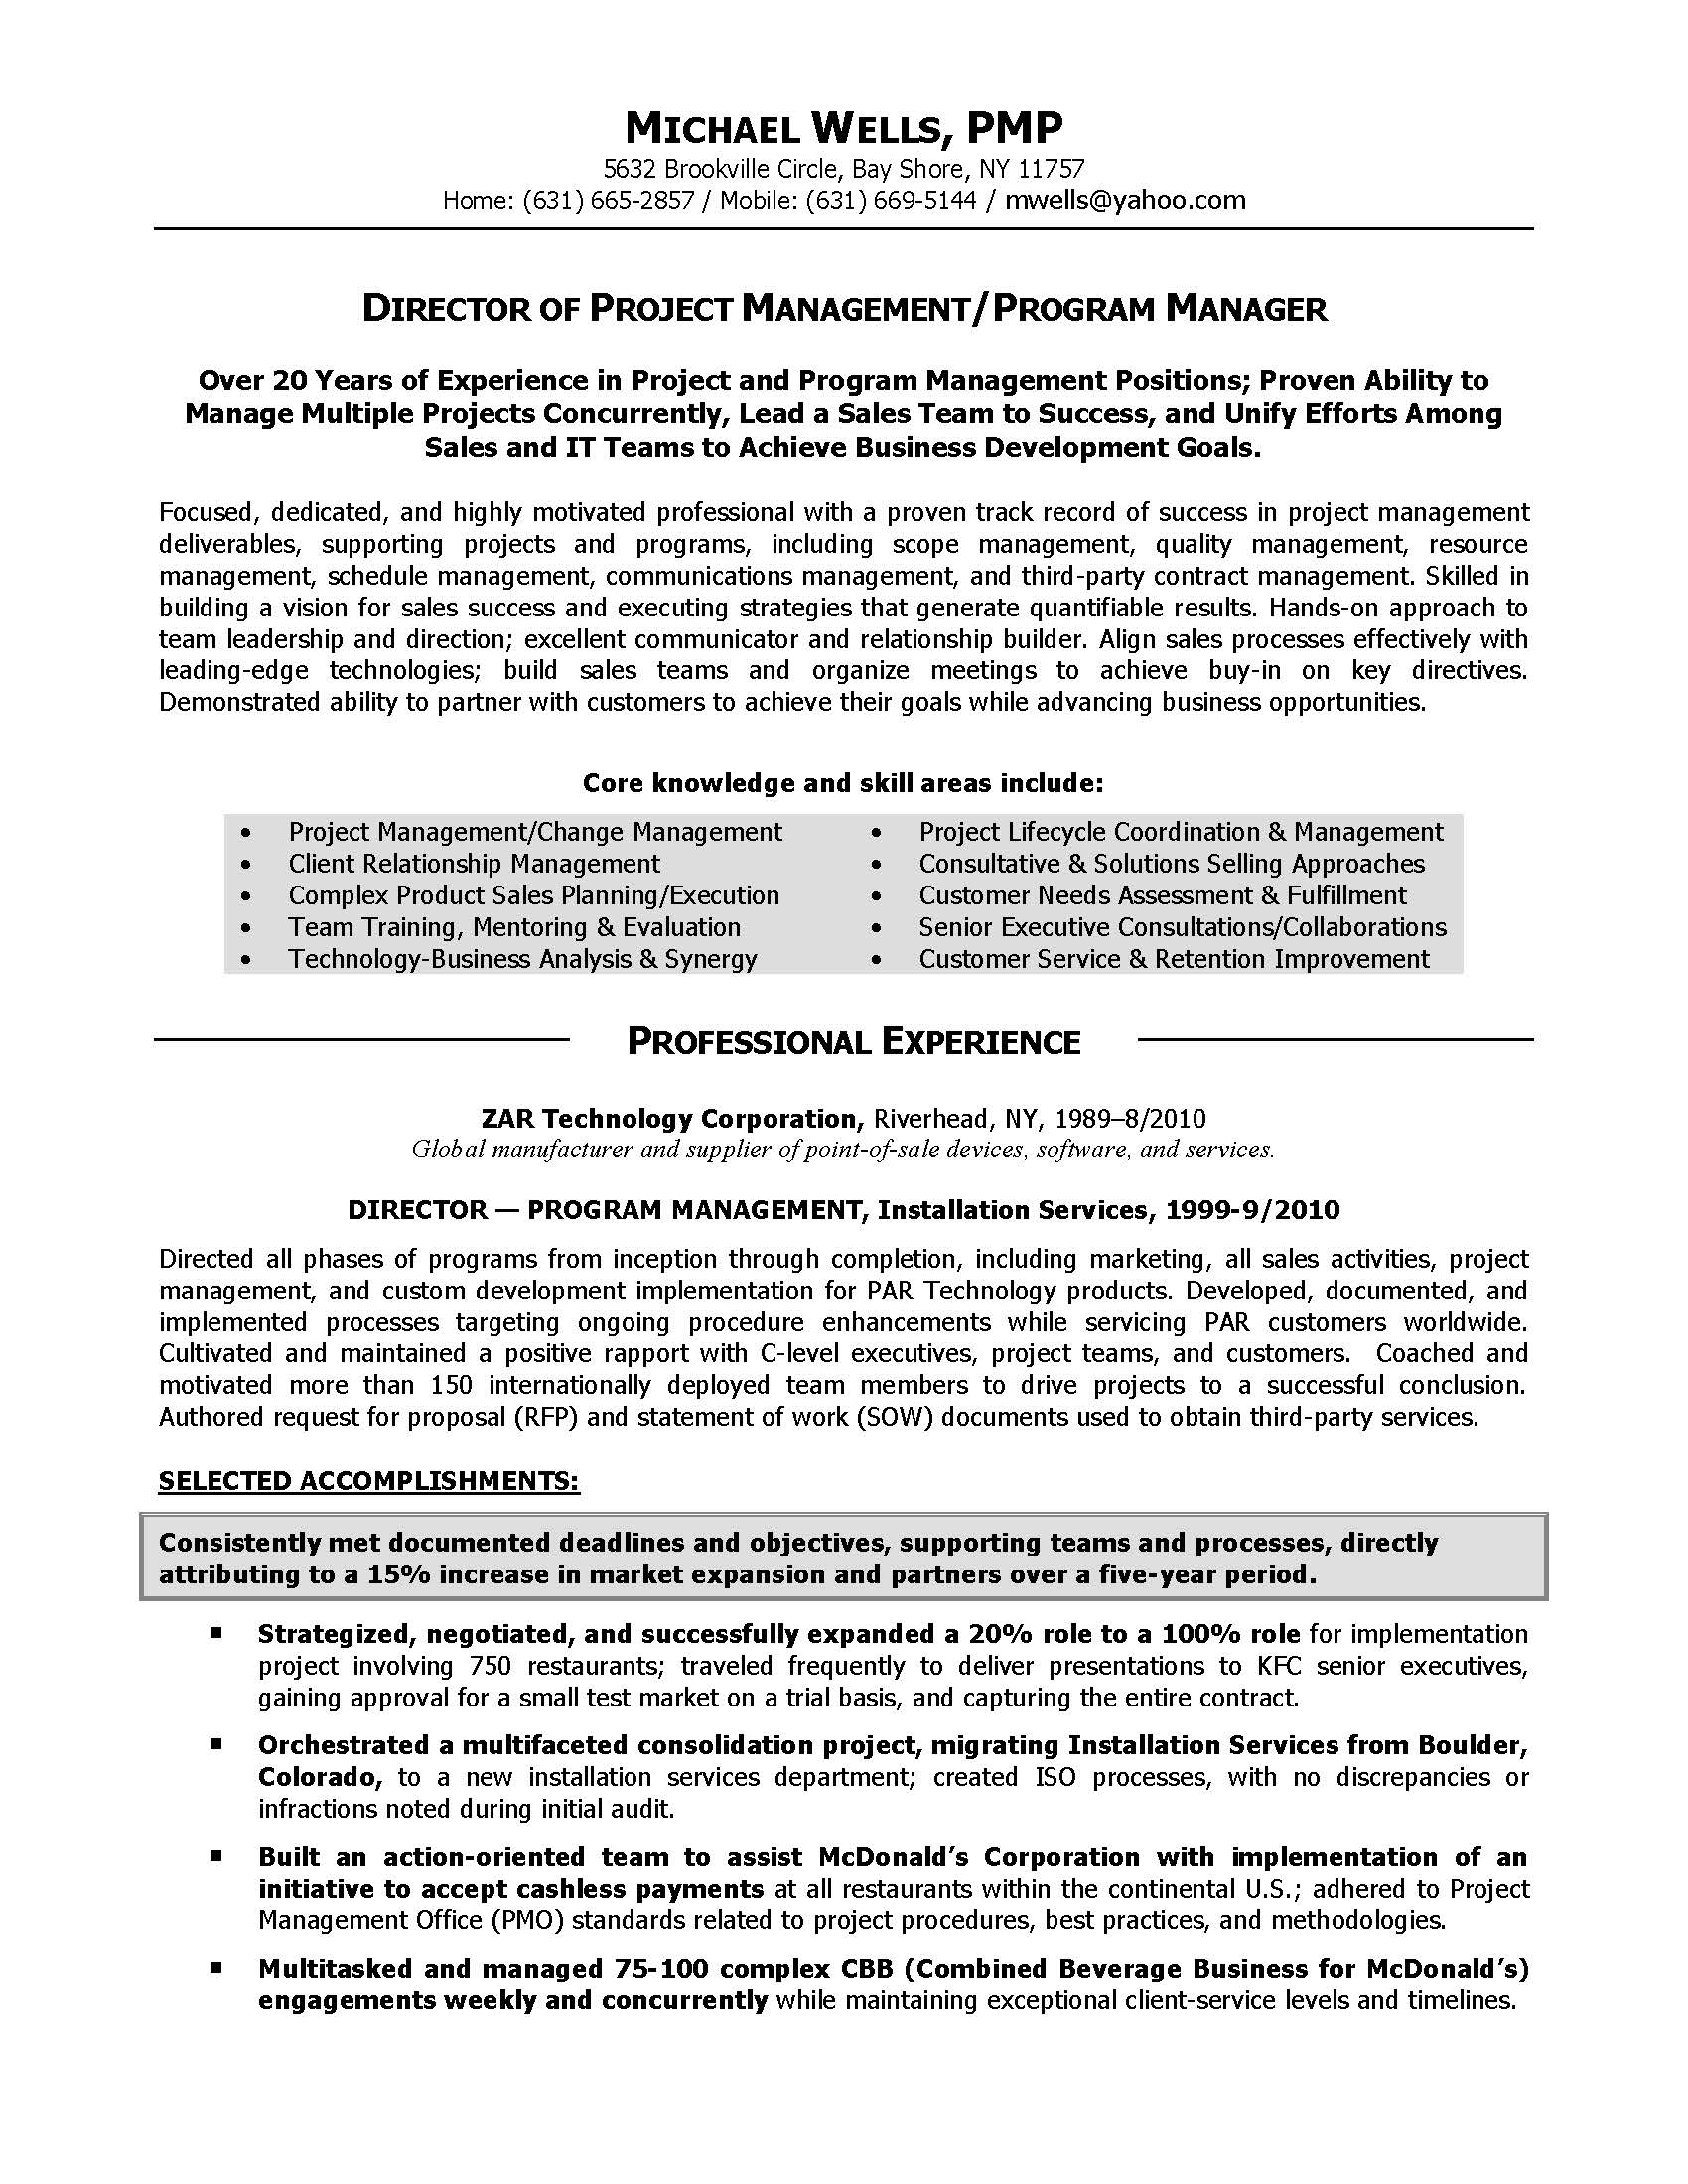 sample resume executive assistant resume samples for administrative  assistant medical resume samples for administrative assistant cover Carpinteria Rural Friedrich